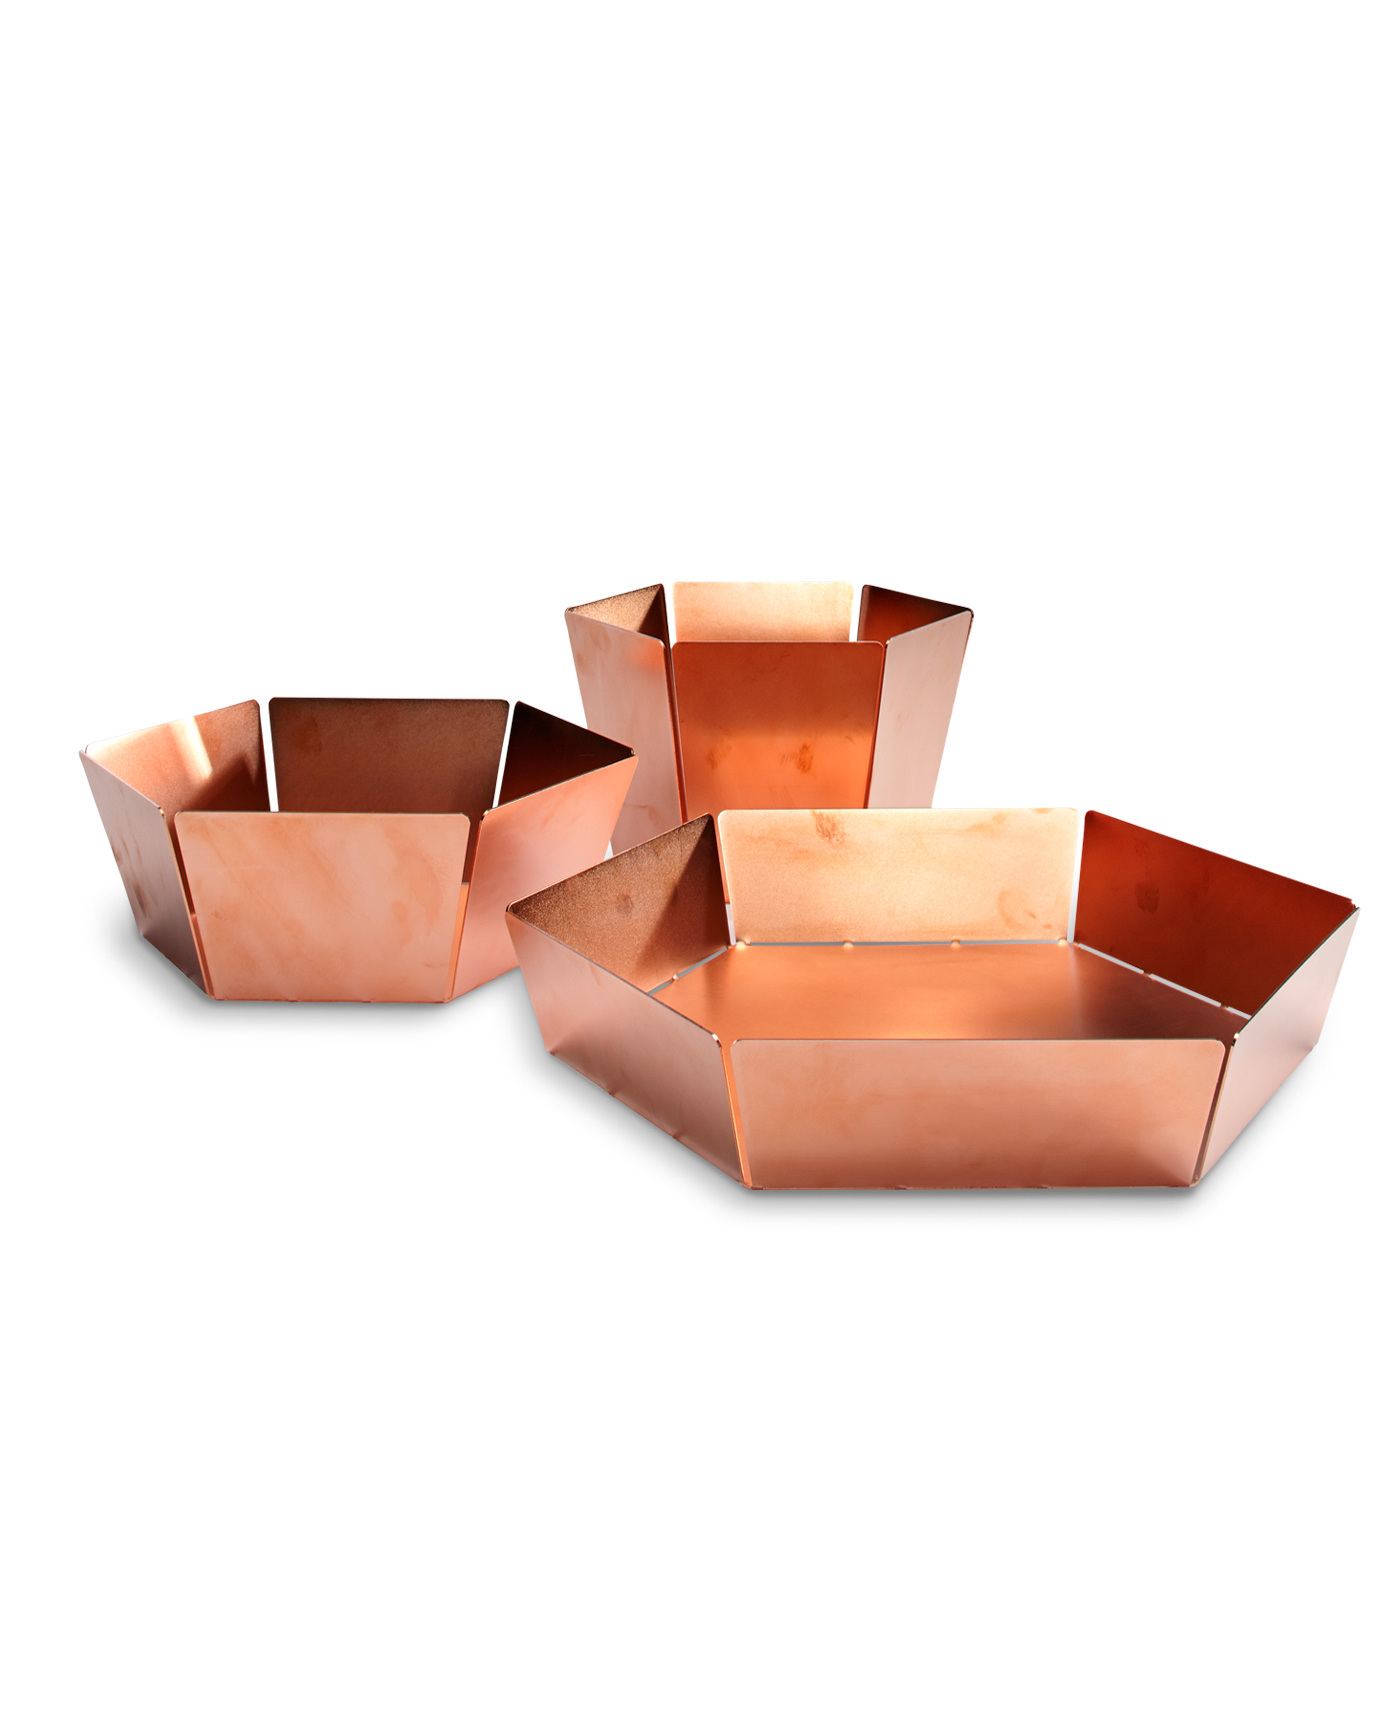 11 Chic Copper Pieces to Add to Your Registry